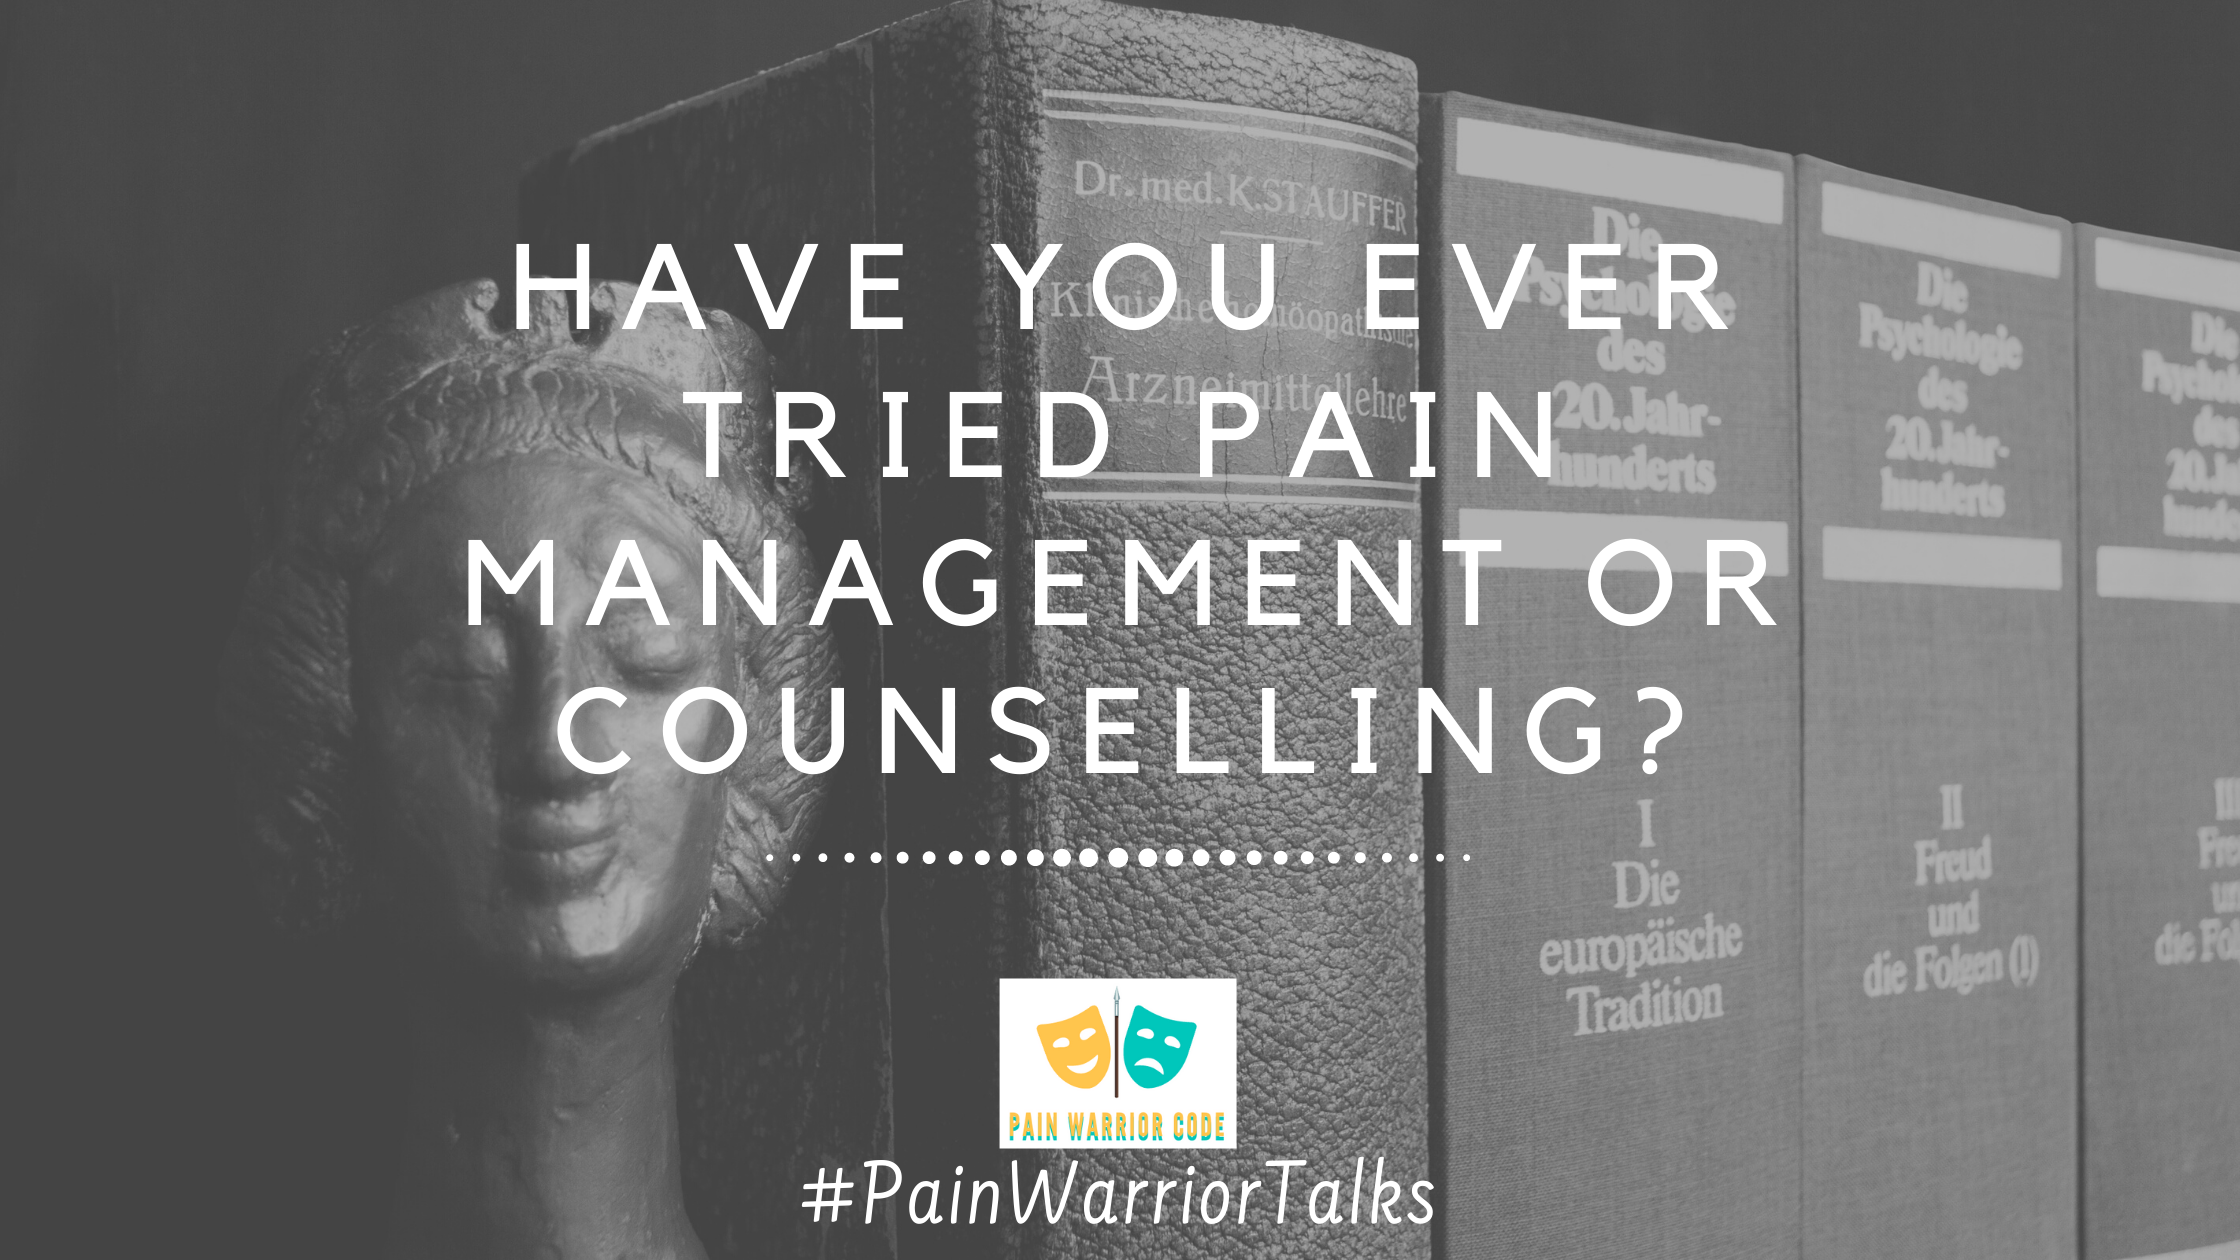 have you ever tried pain management or counselling?